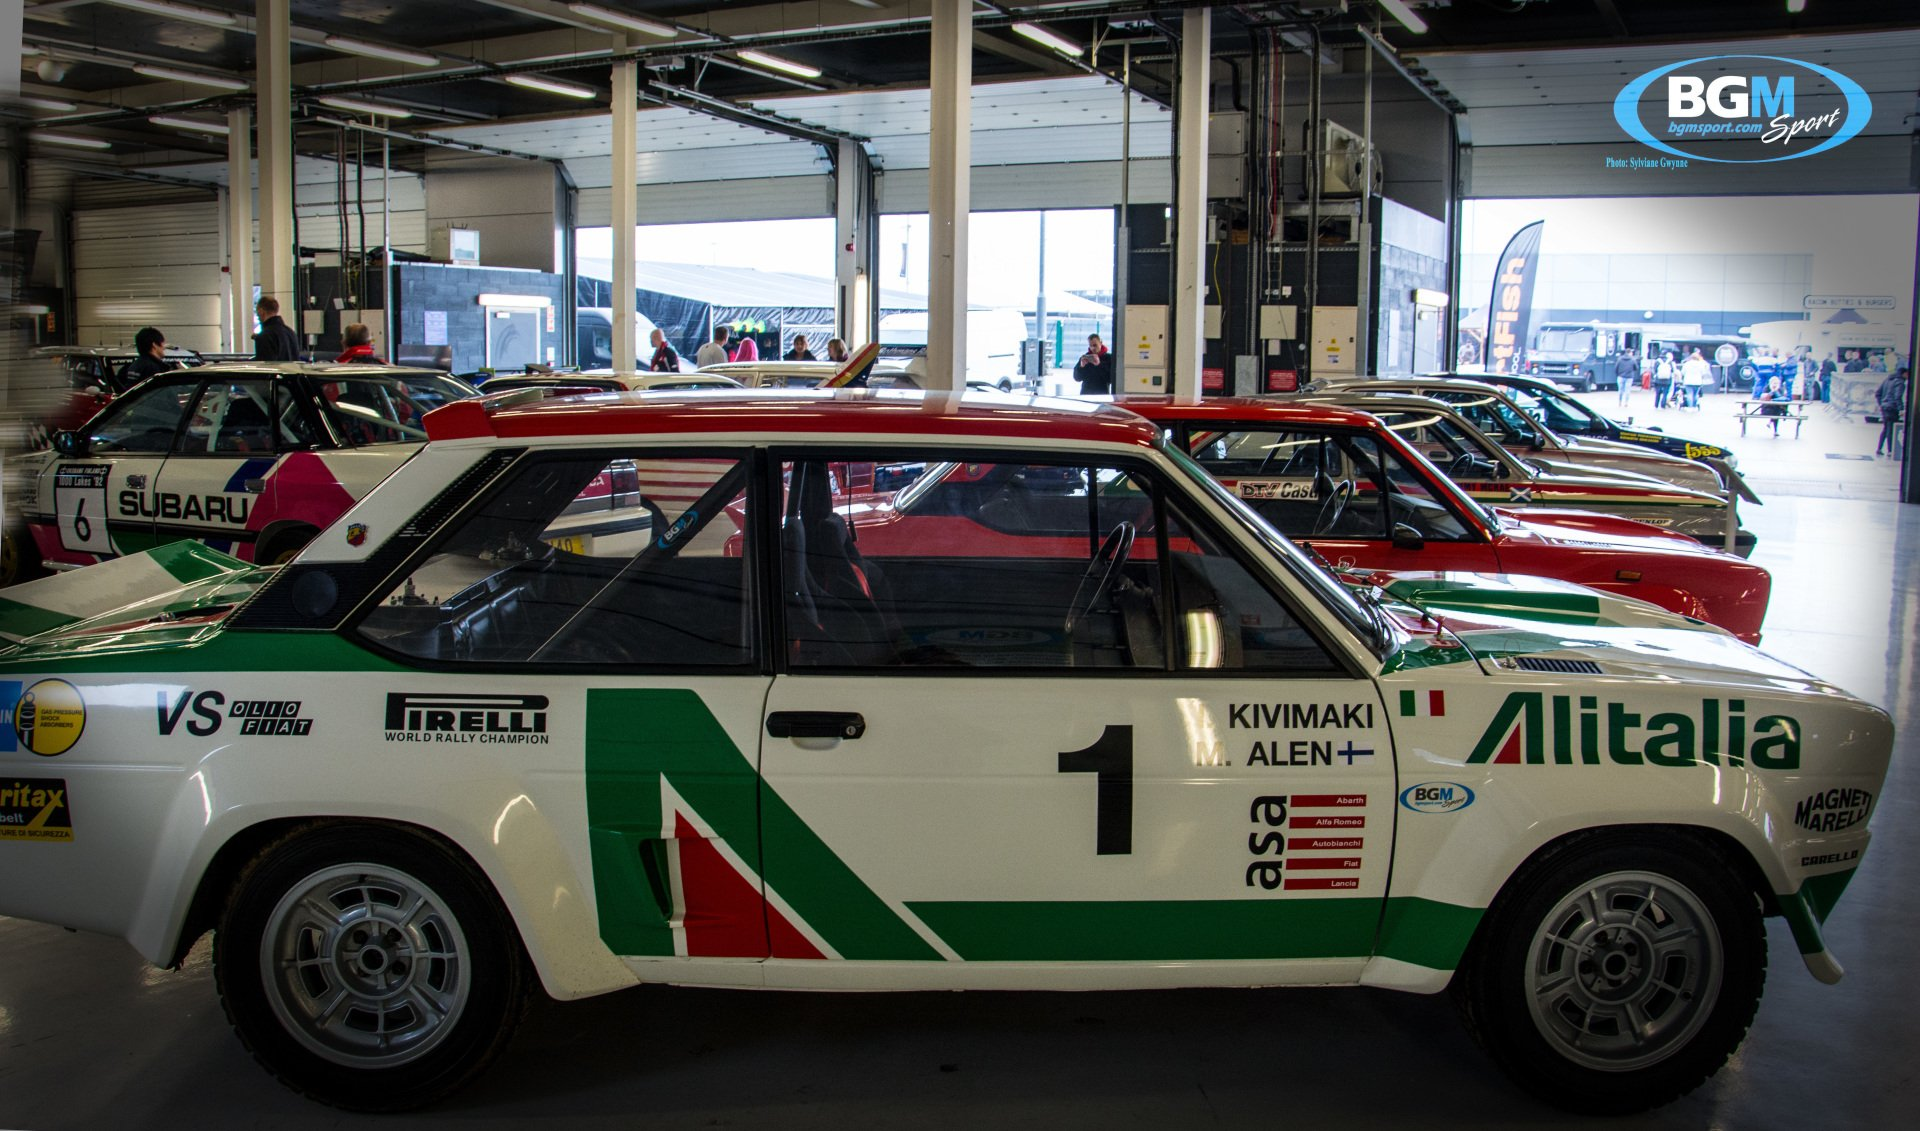 fiat-131-abarth-grp-4-rally-car-37